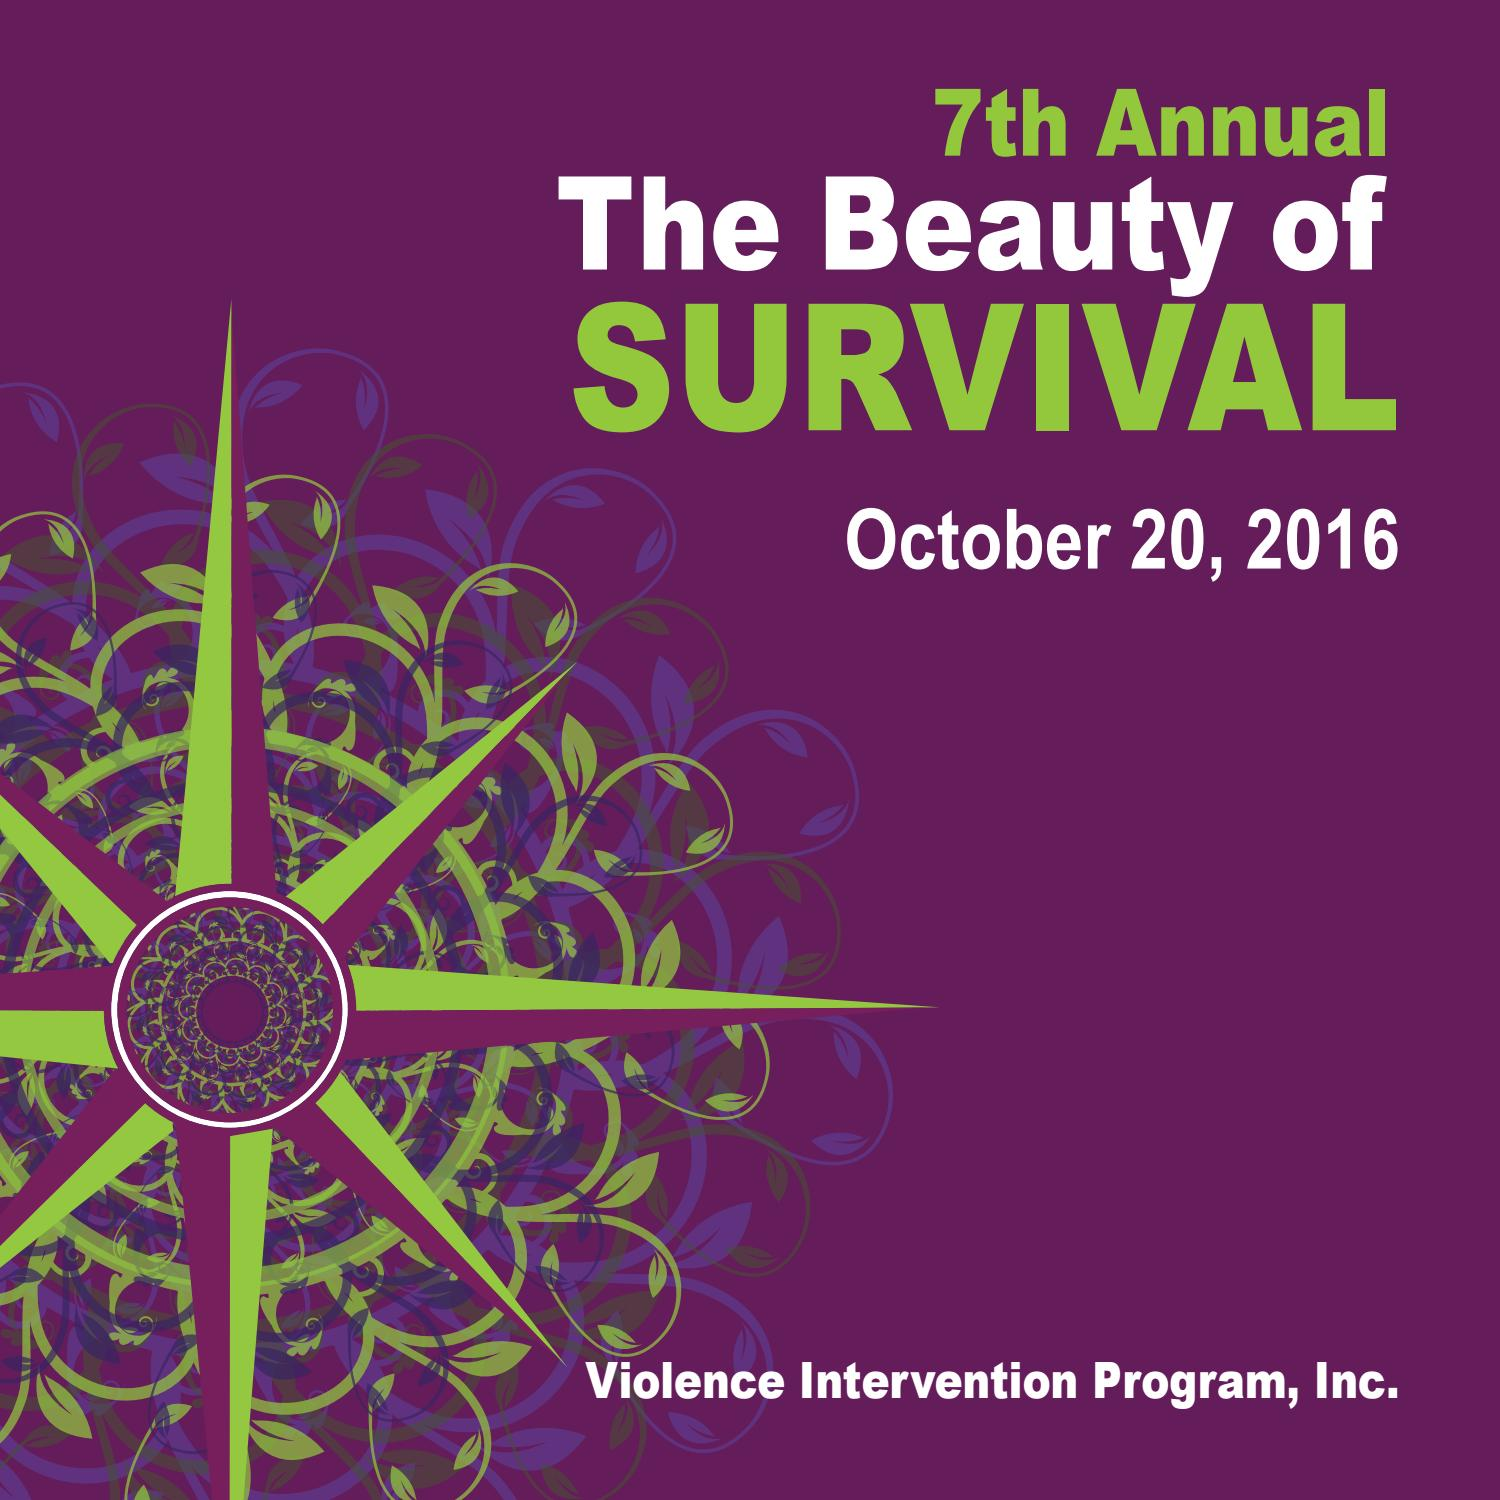 Tatiana perez hsbc bank - Commemorative Journal 7th Annual The Beauty Of Survival By Violence Intervention Program Inc Issuu